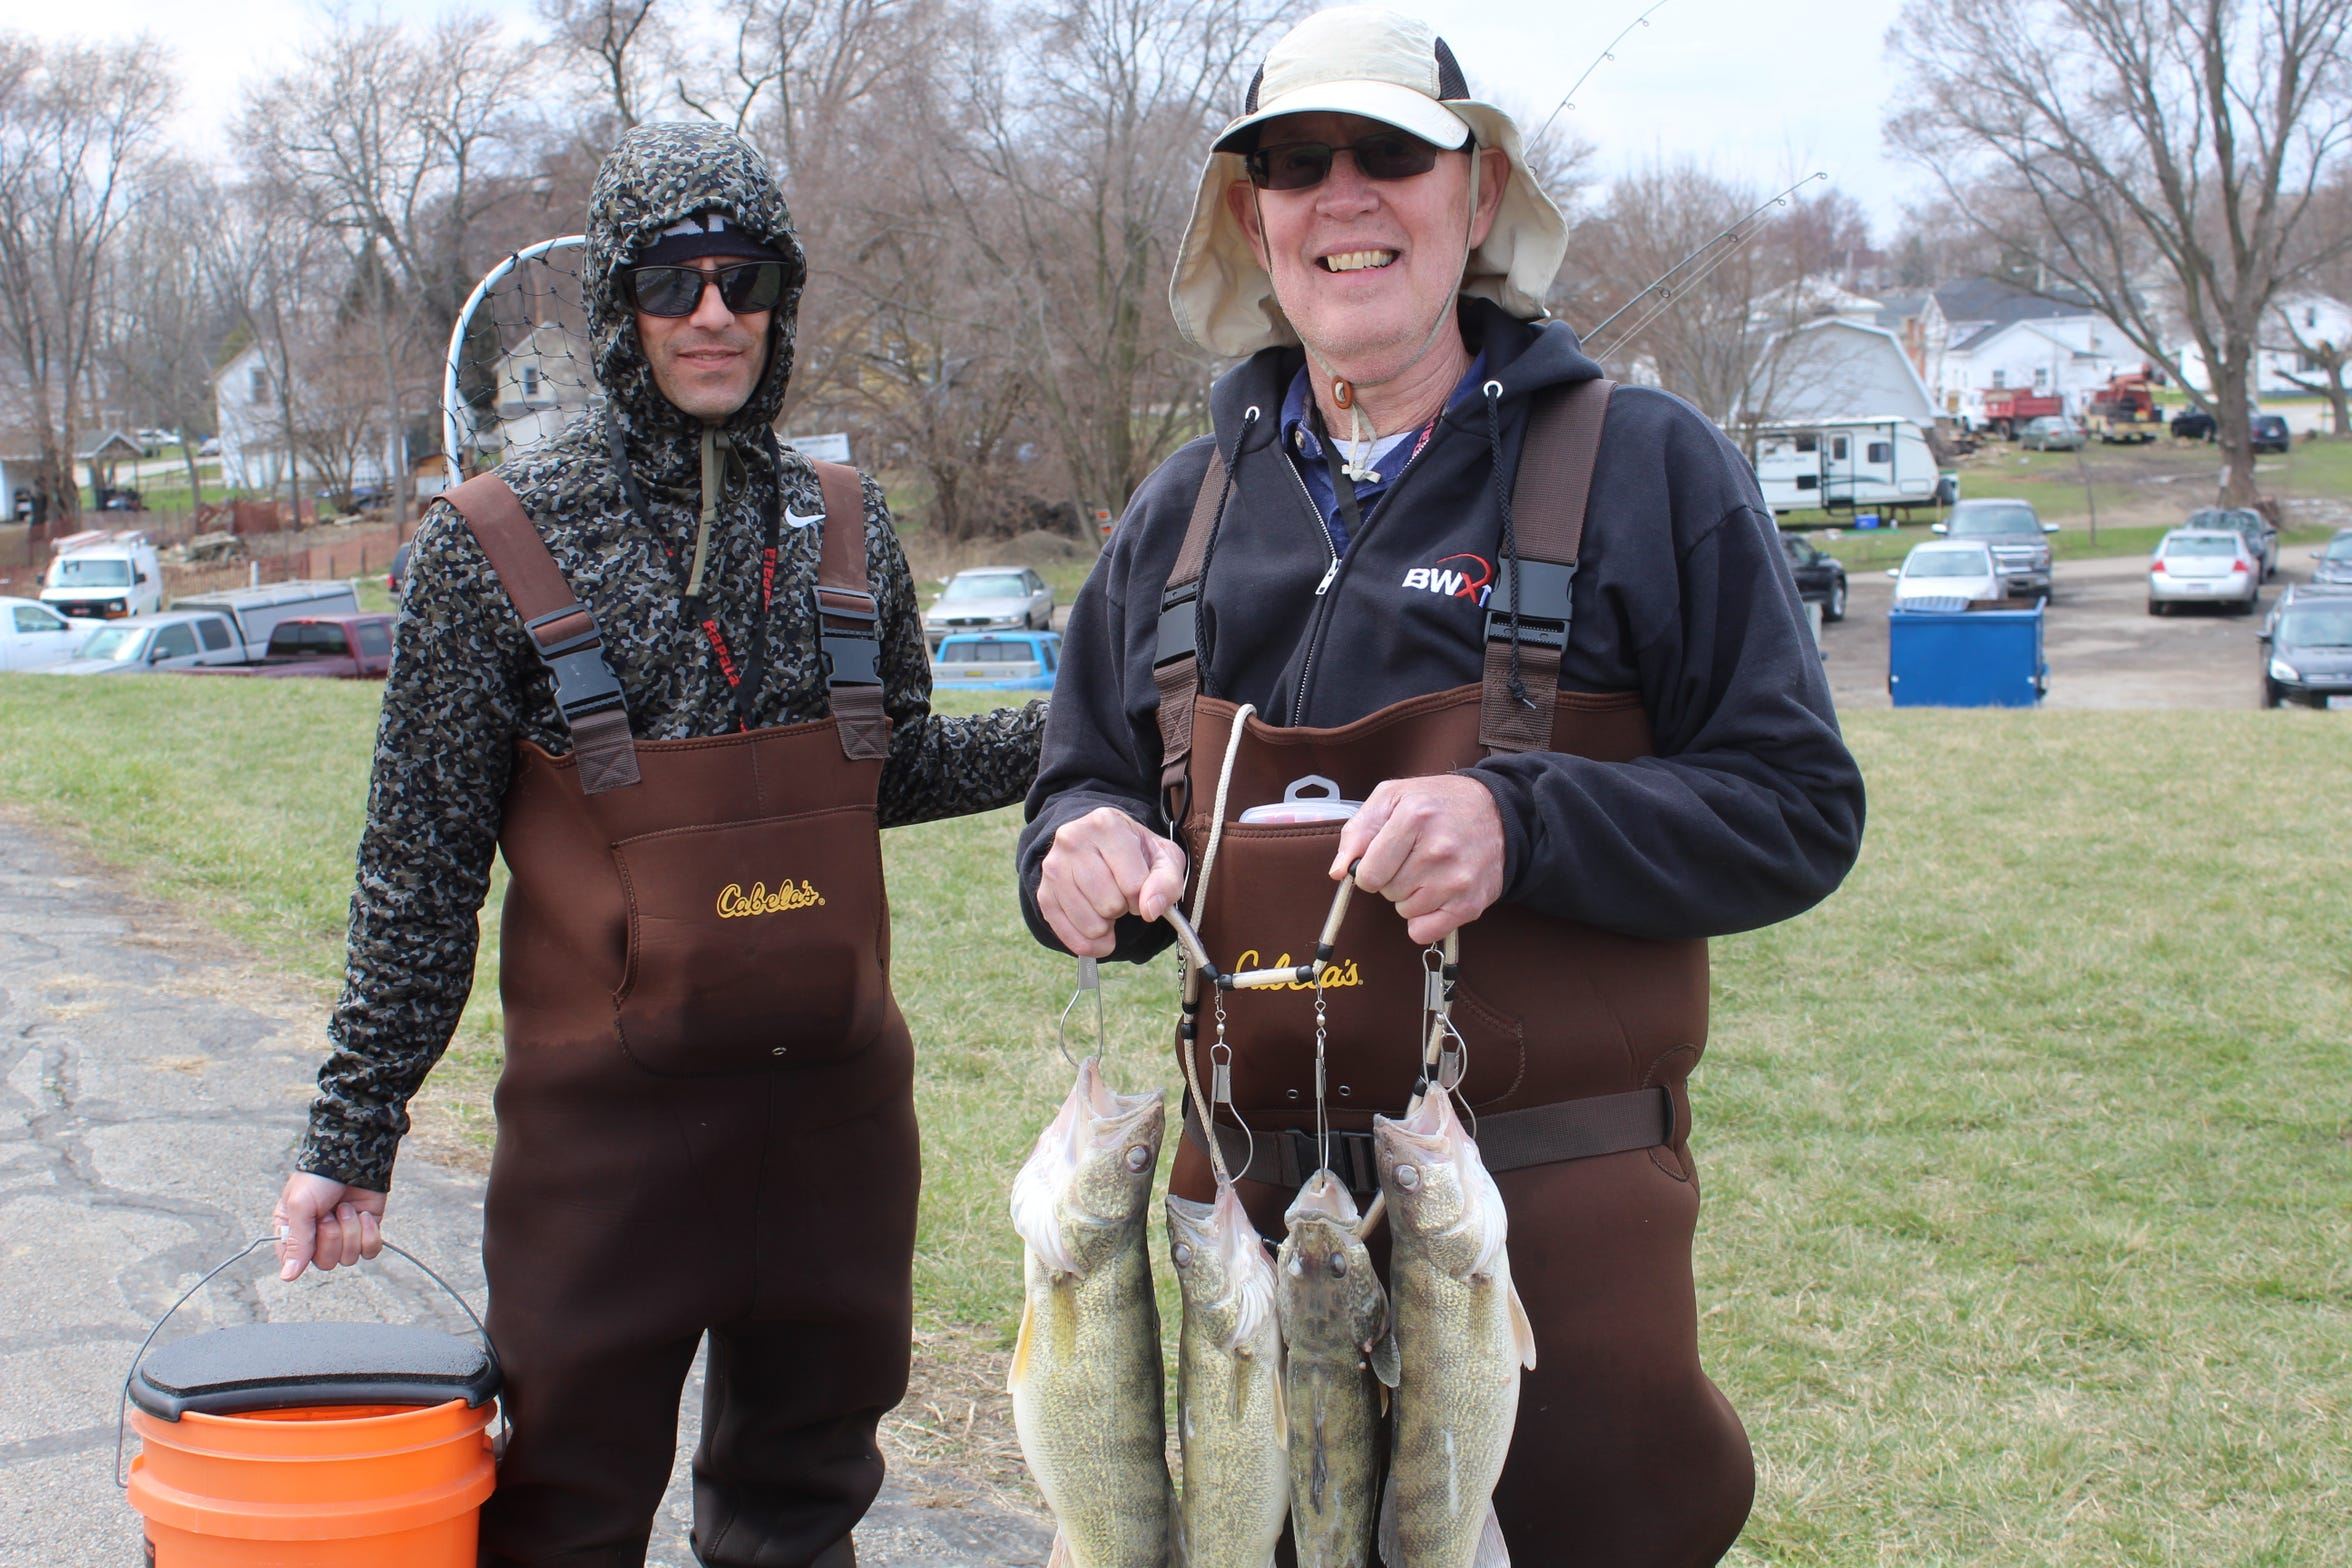 Jerry Dobbins of Doylestown holds four walleye he caught Thursday in the Sandusky River as he fished with his son, Jerry Jr., of Barberton. The Dobbins were among several fishermen that come to Fremont every year for the annual walleye run.